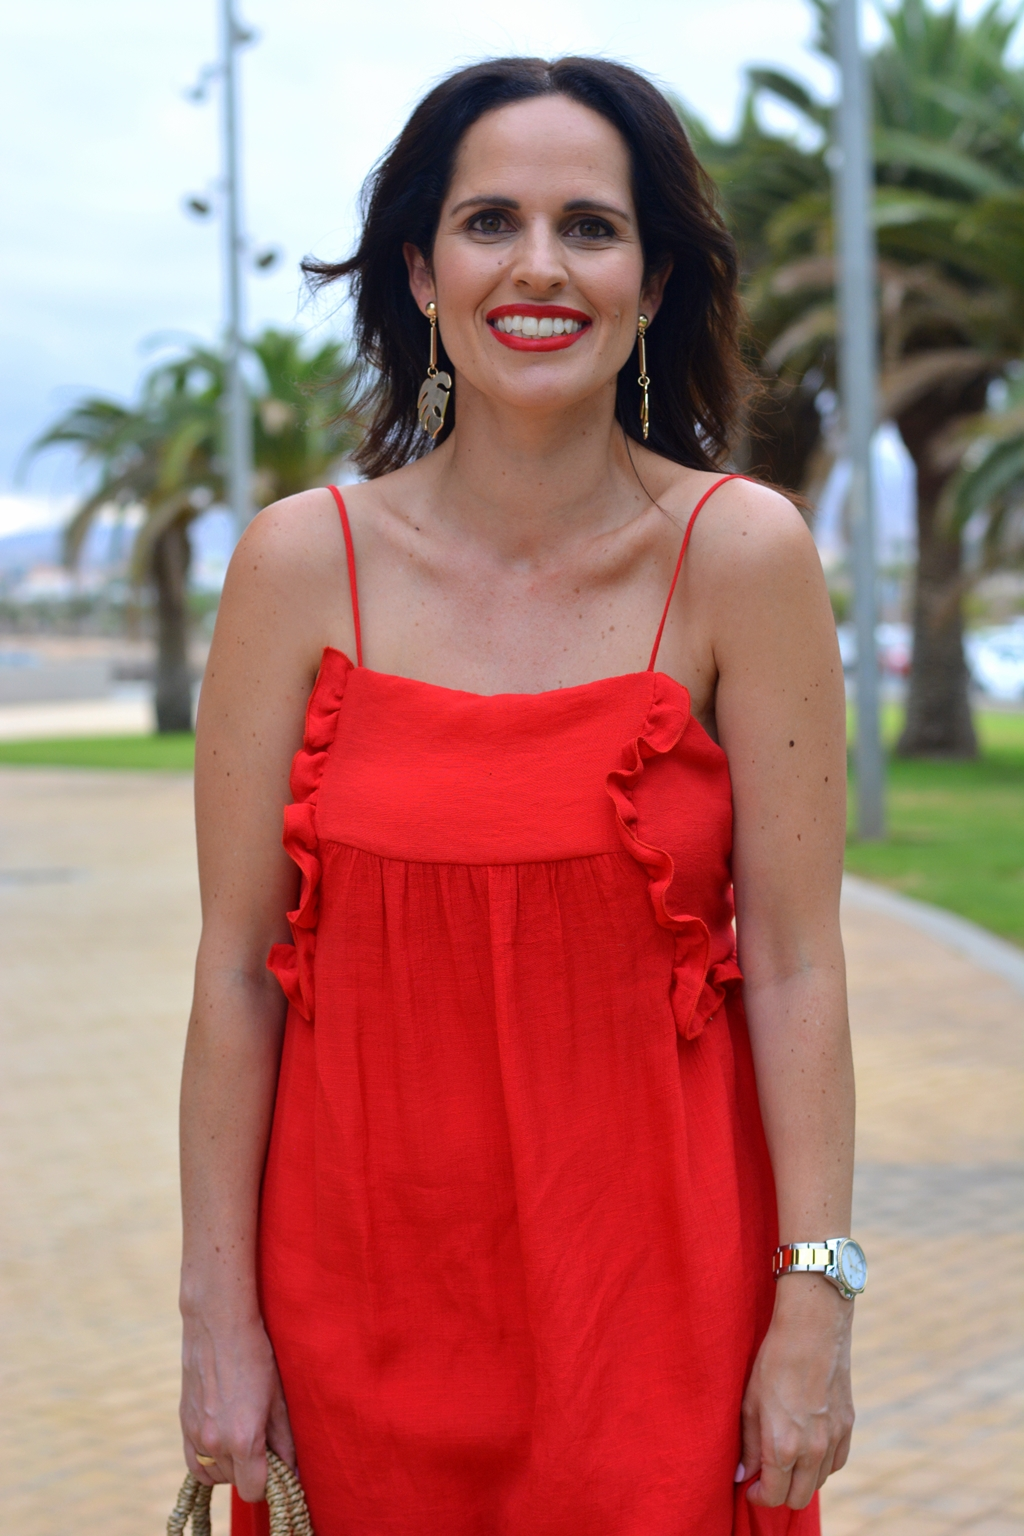 zara-red-dress-outfit-streetstyle-gema-betancor